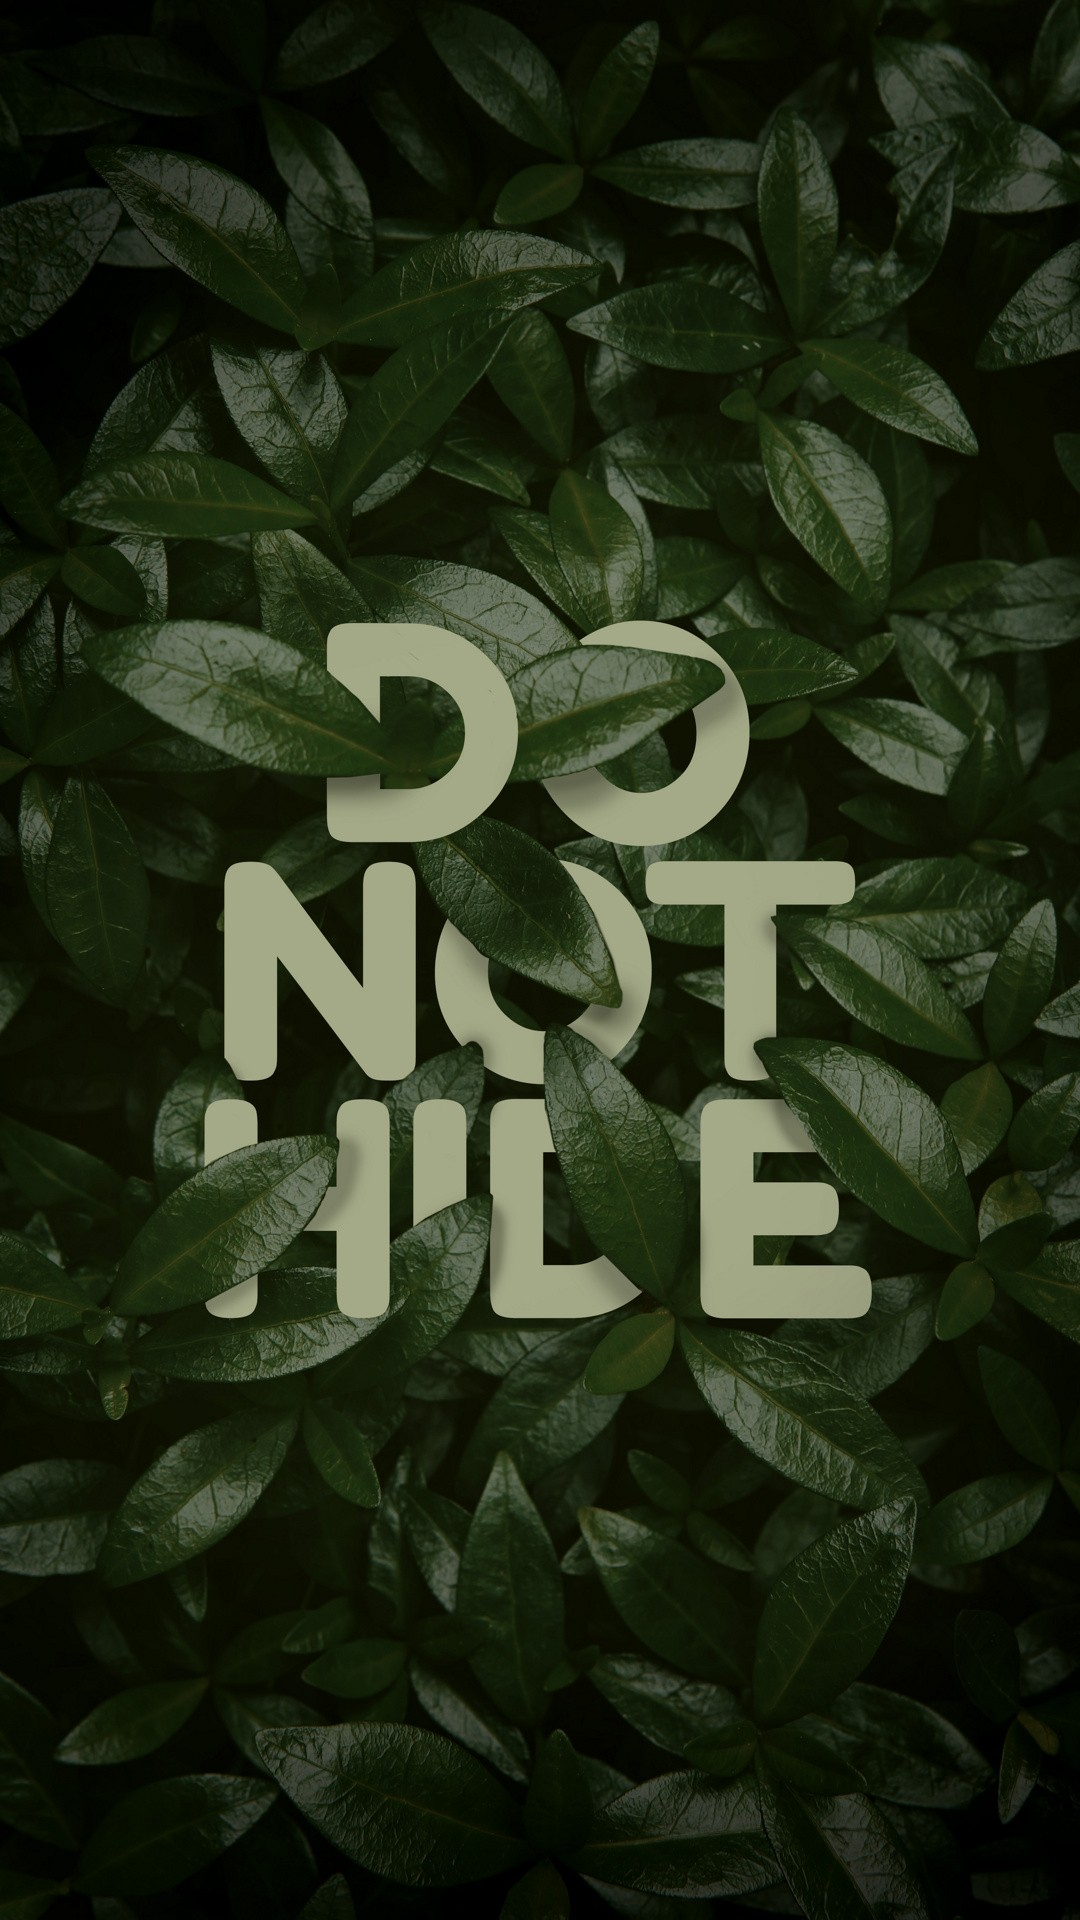 Do Not Hide Wallpaper Samsung J4 Core 1080x1920 Wallpaper Teahub Io